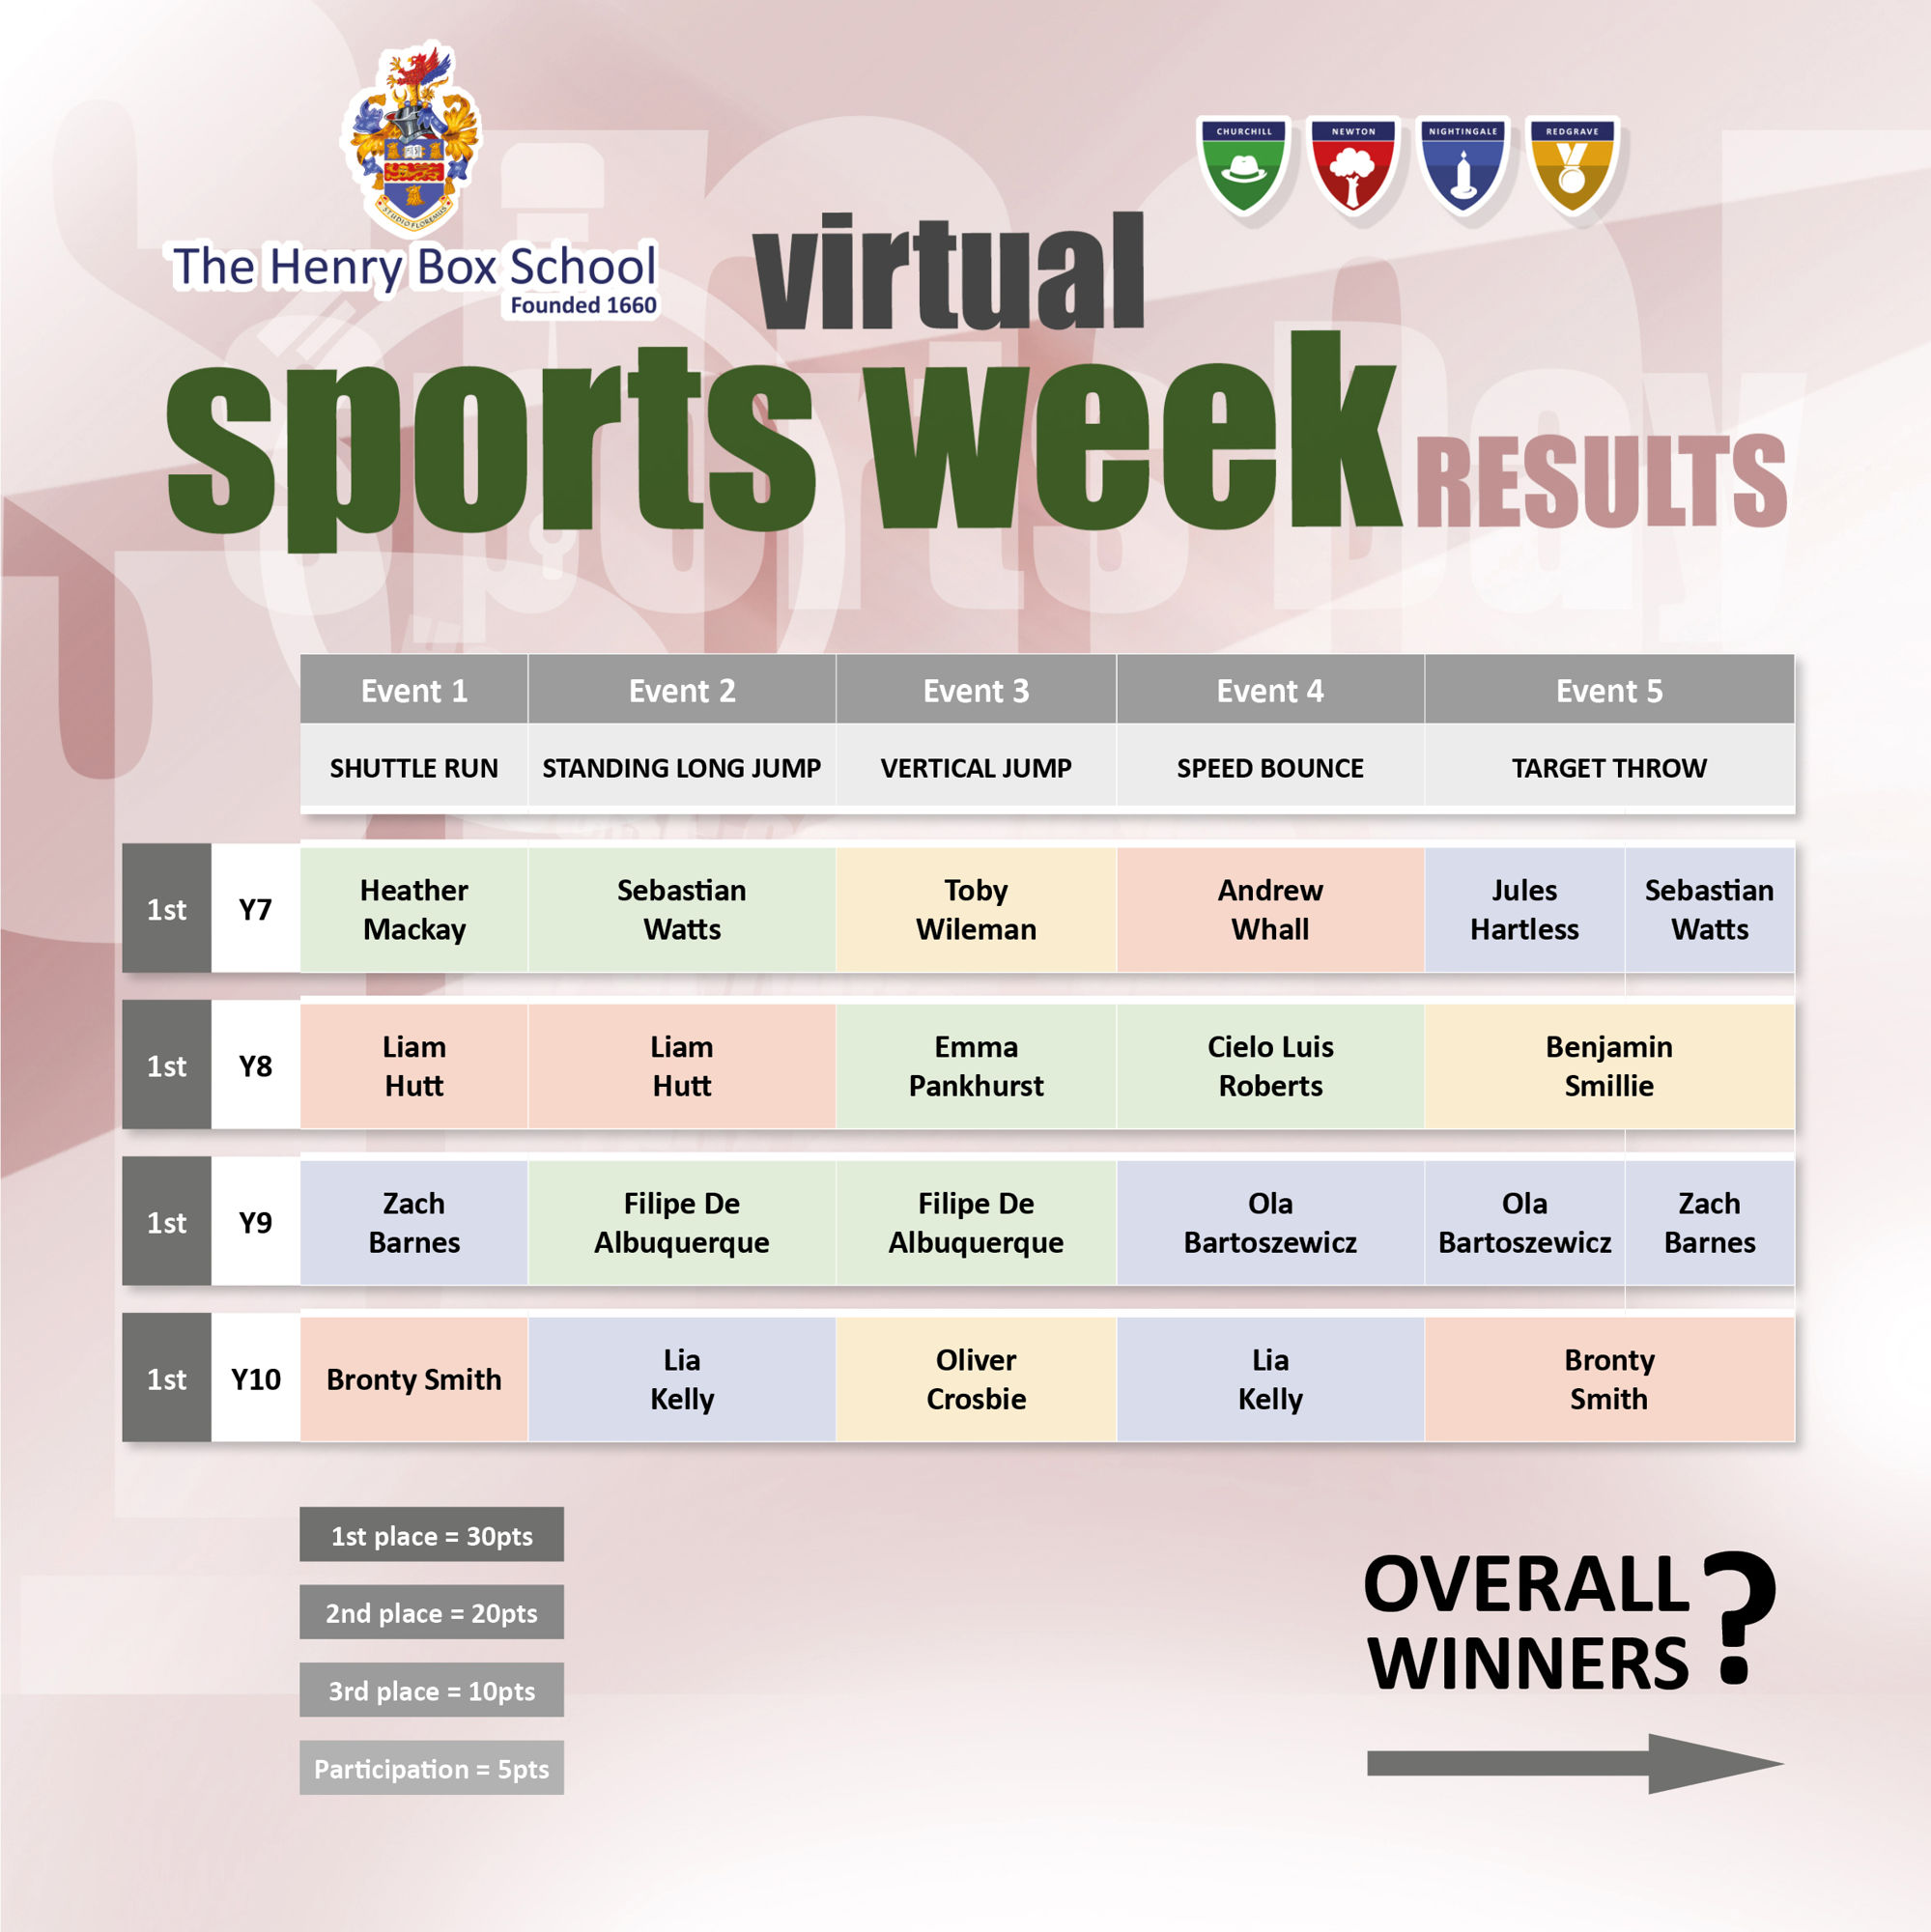 Sports week results 2020